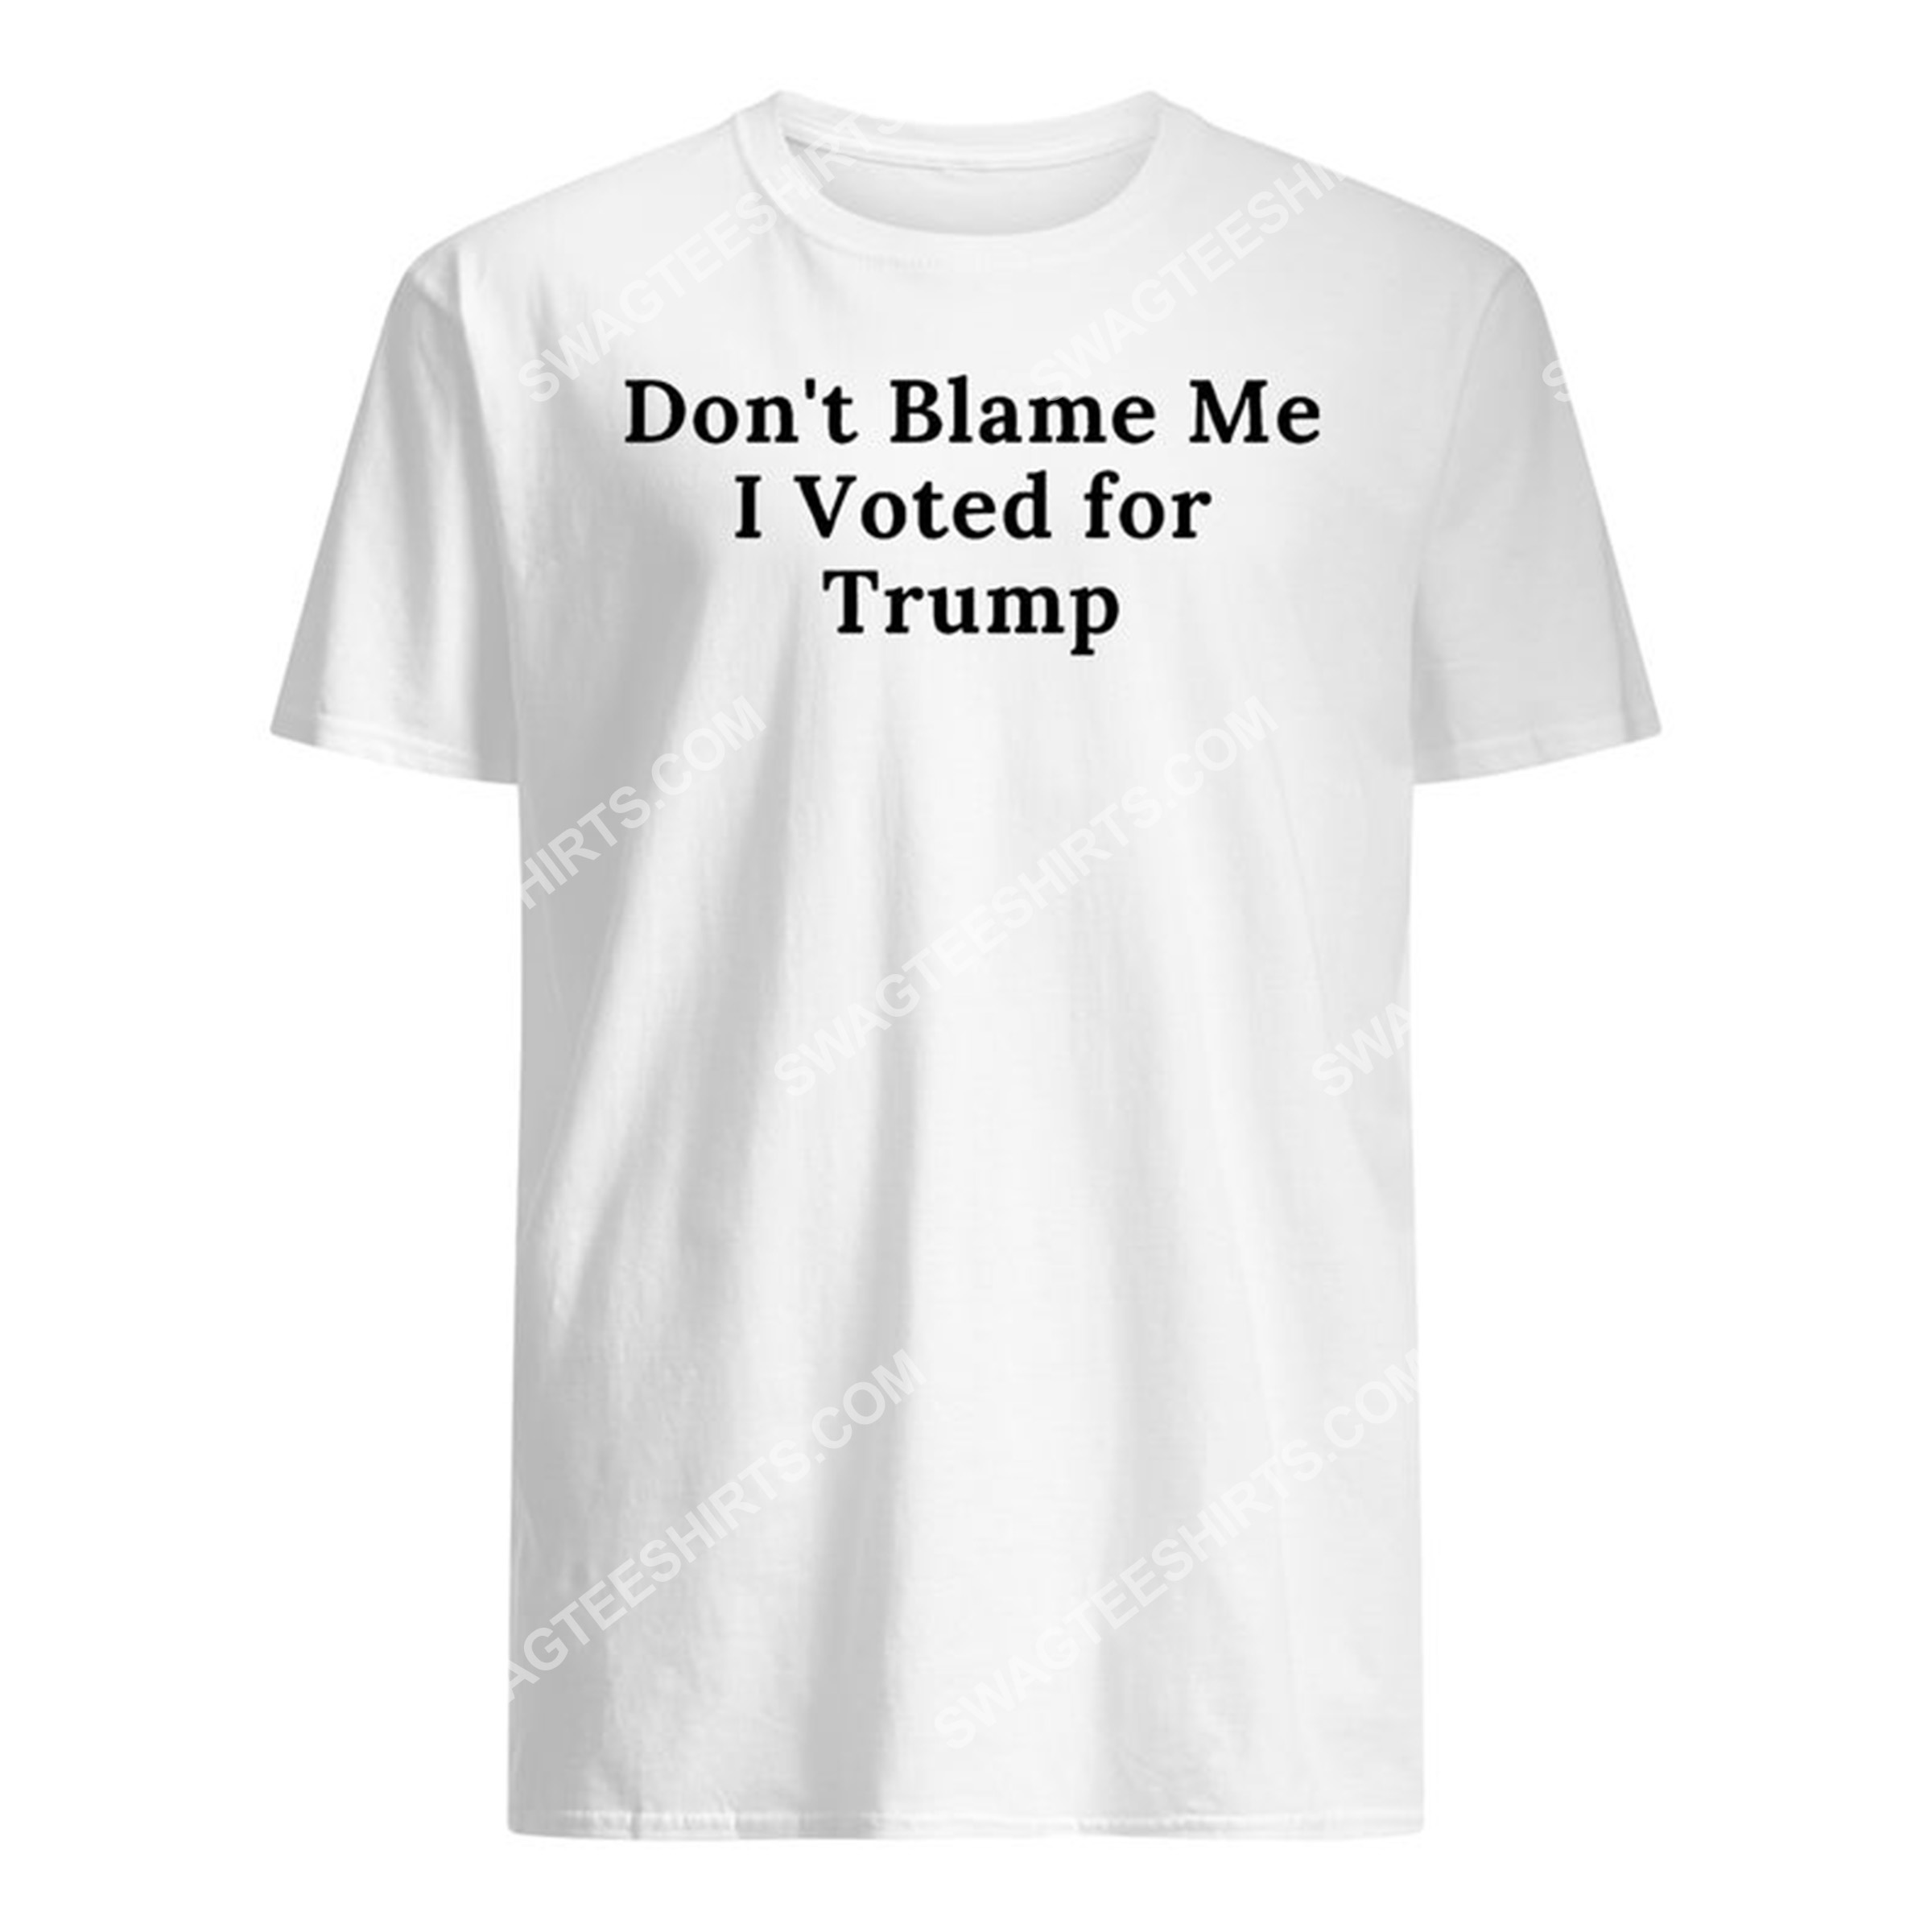 don't blame me i voted for trump shirt 1(1)